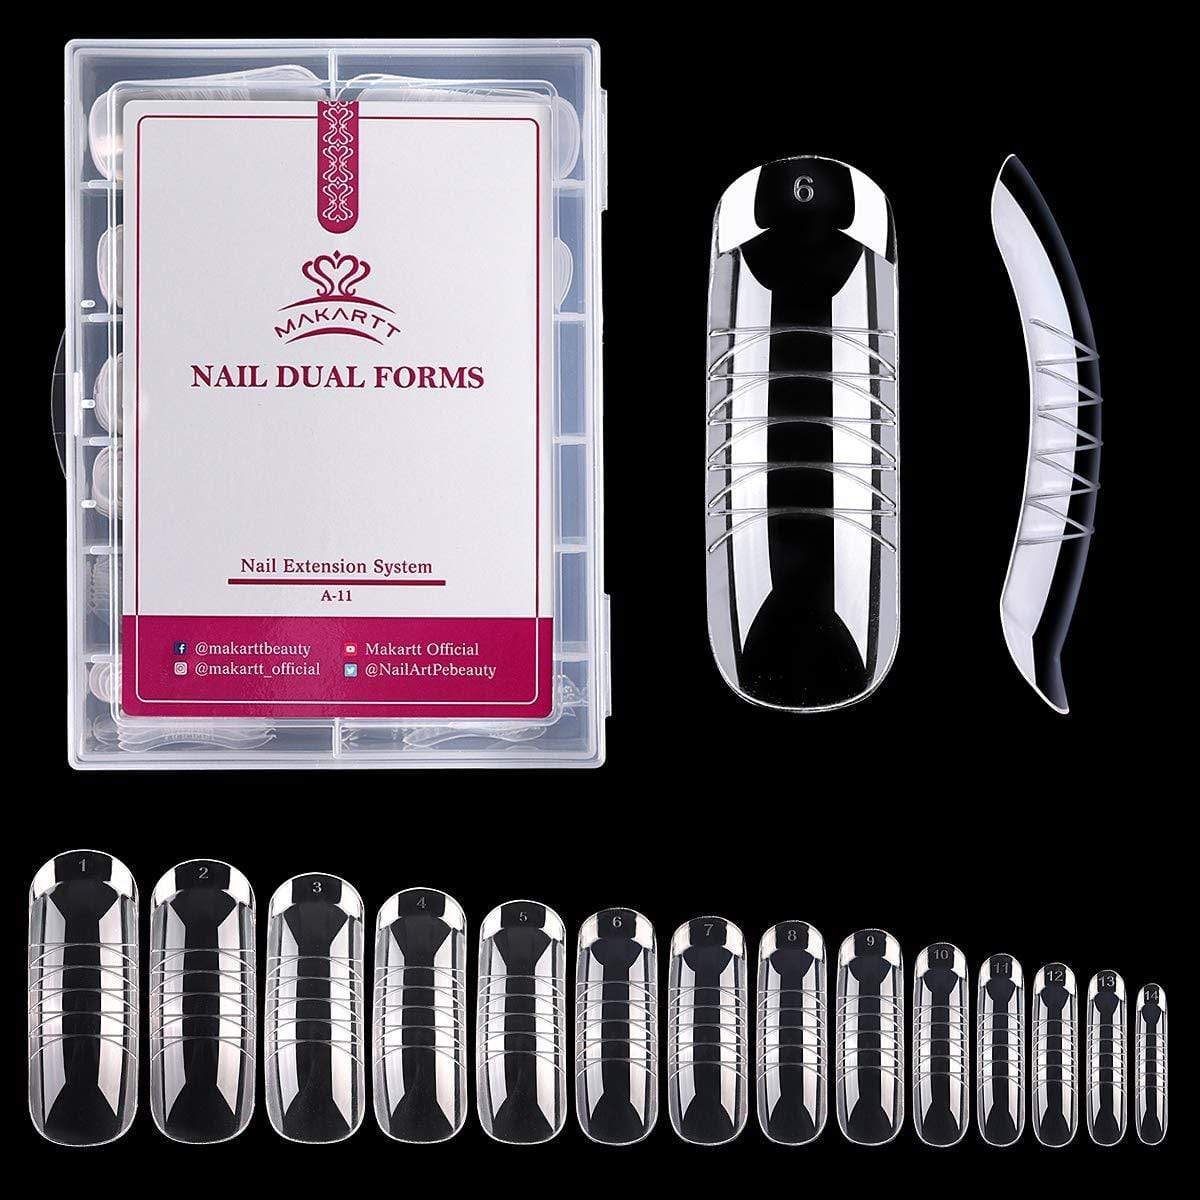 140 Pieces Poly Nail Extension Gel Dual Forms with Clear Plastic Case - Makartt